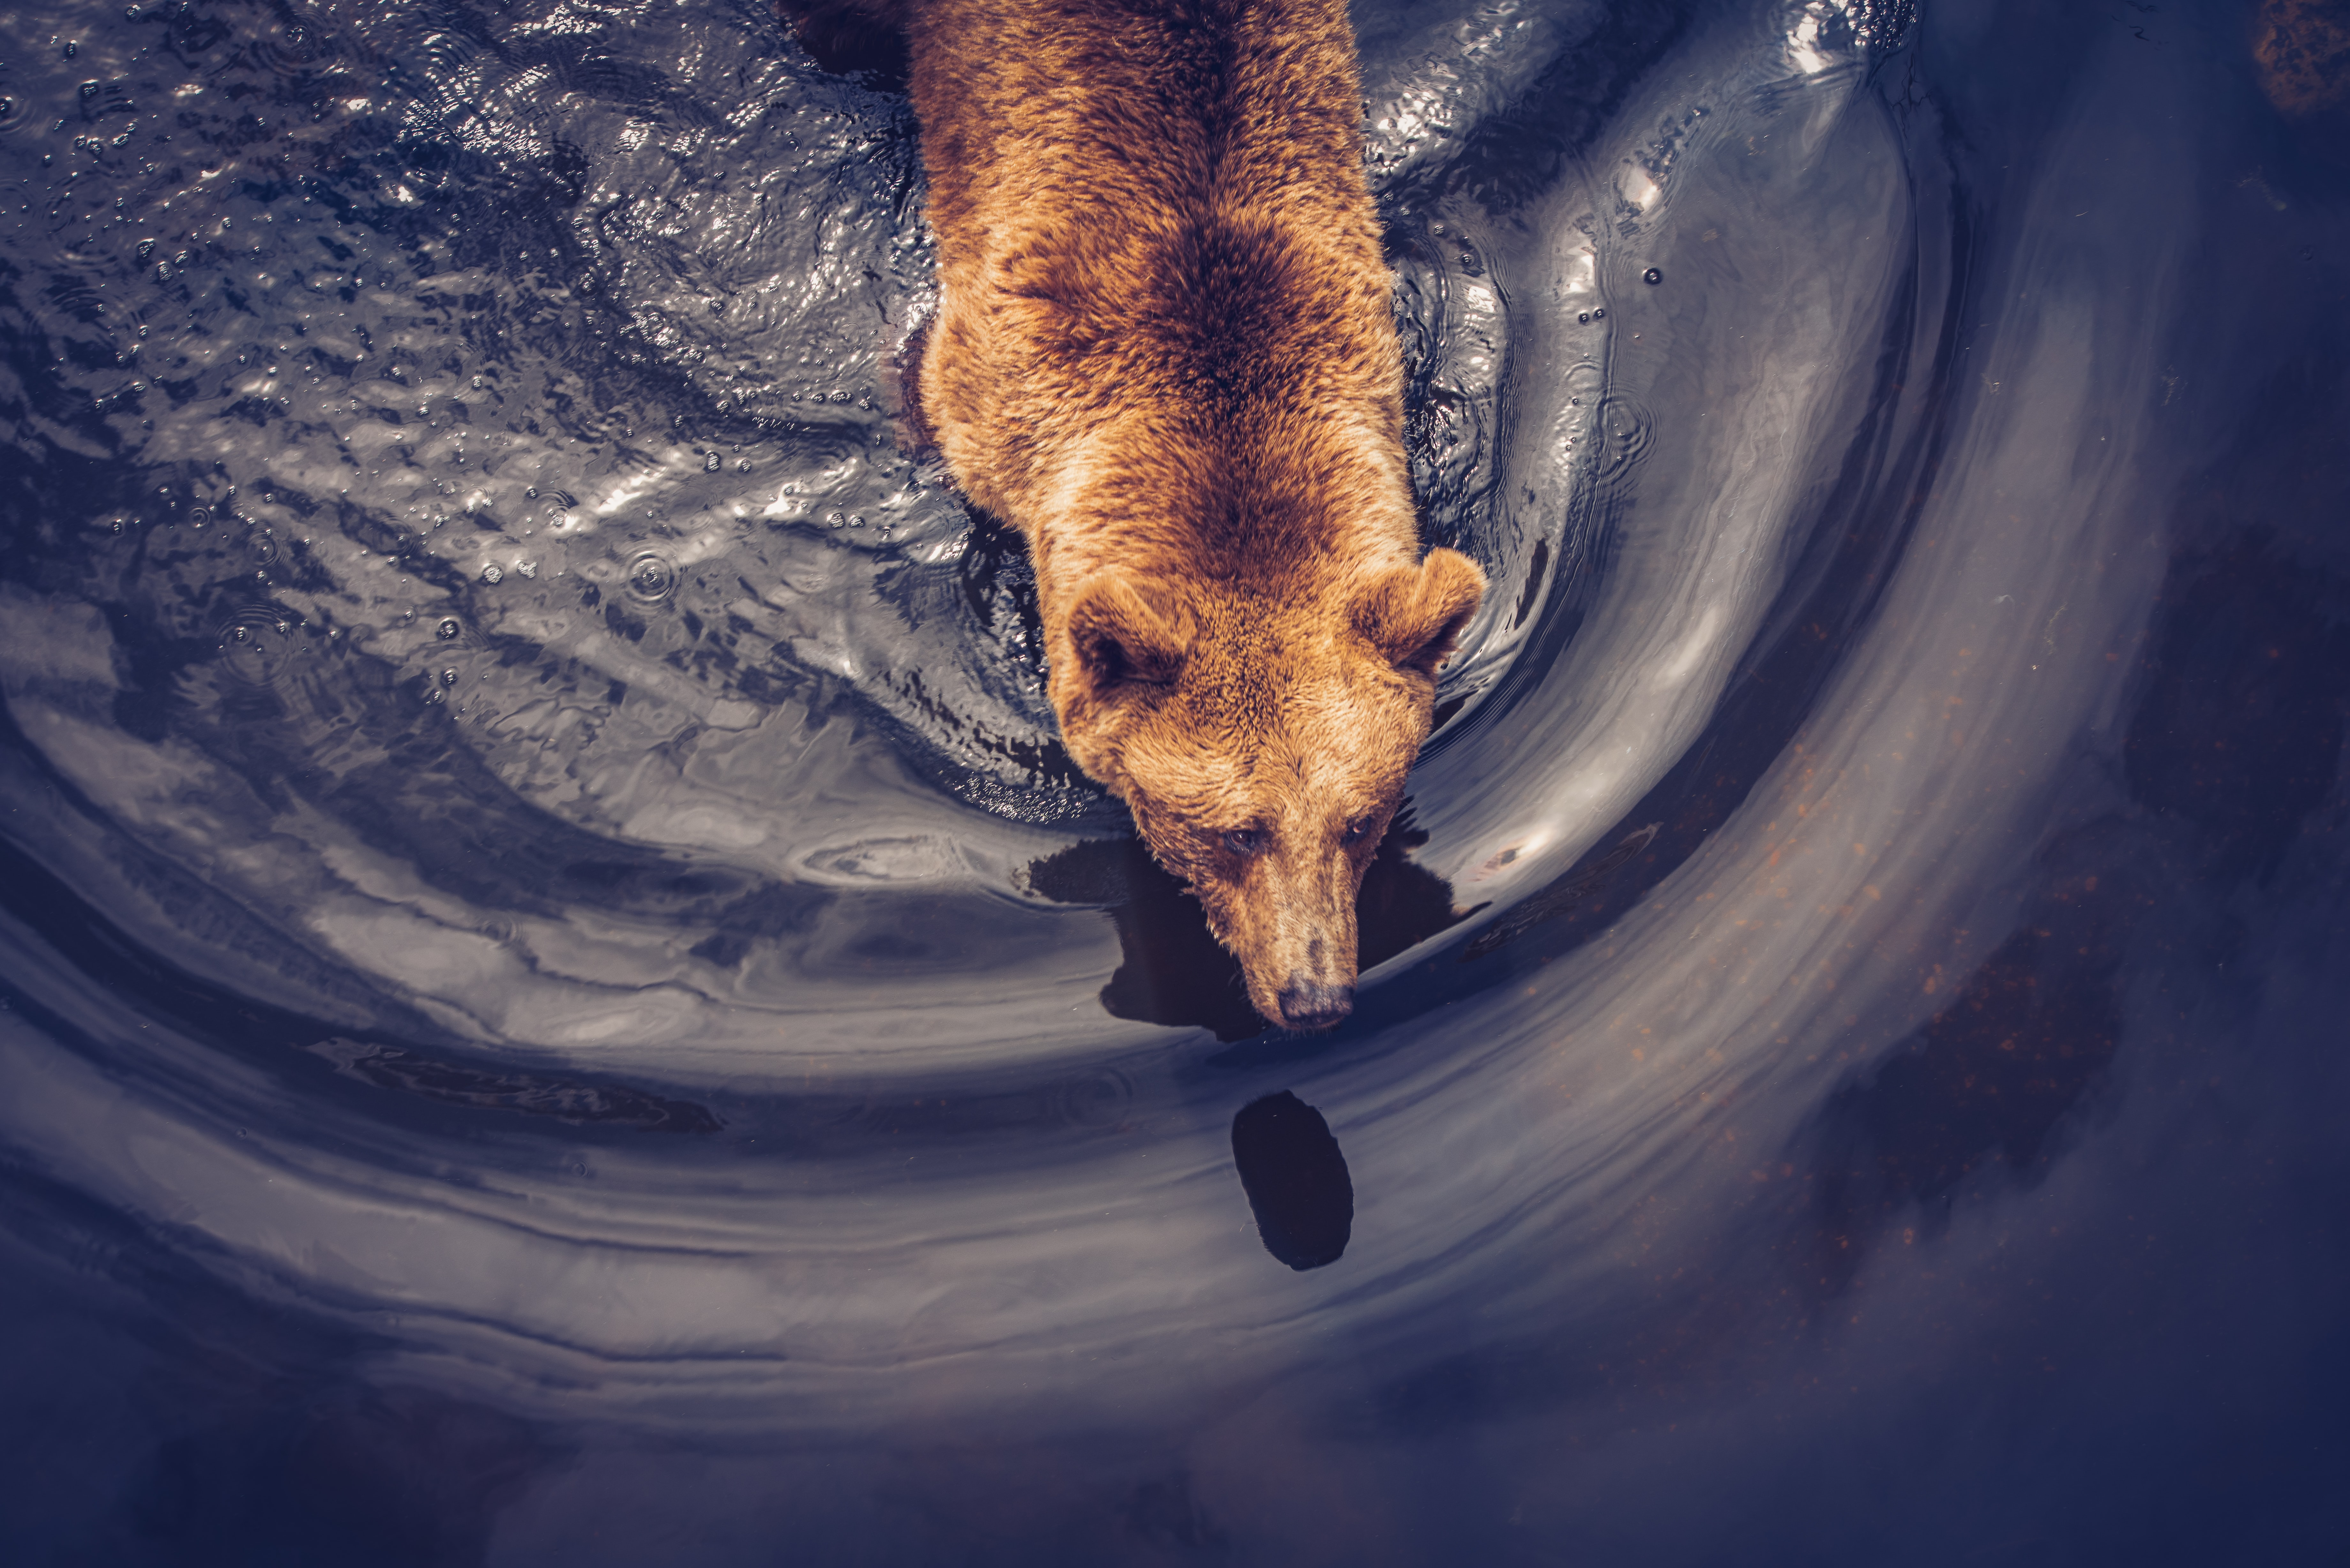 108730 download wallpaper Animals, Bear, Brown, Predator, View From Above screensavers and pictures for free